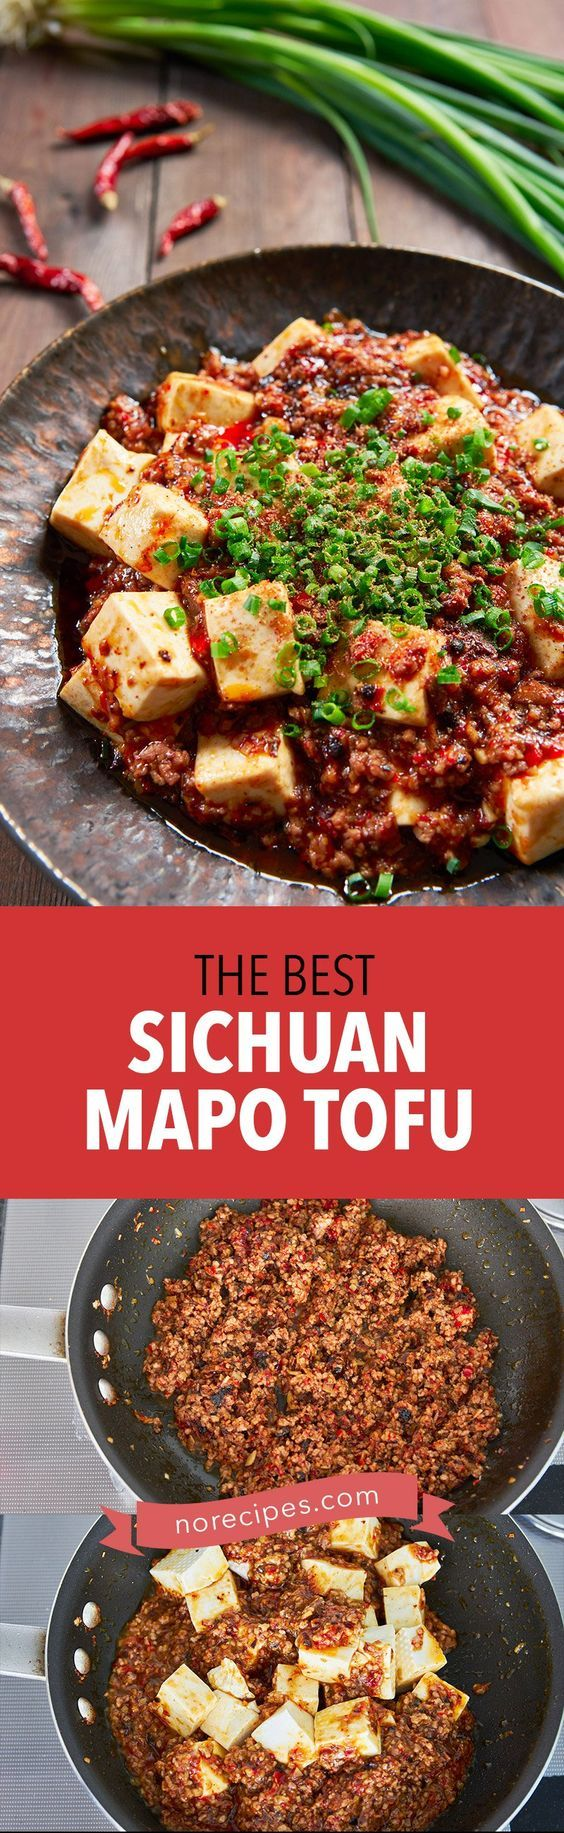 Mapo Tofu (麻婆豆腐) is a fiery Sichuan pork and tofu stir-fry with the hallmark málà balance of tongue tingling and spicy. This easy to follow recipe breaks it down and comes together in under 15 minutes. #sichuan #tofu #stirfry